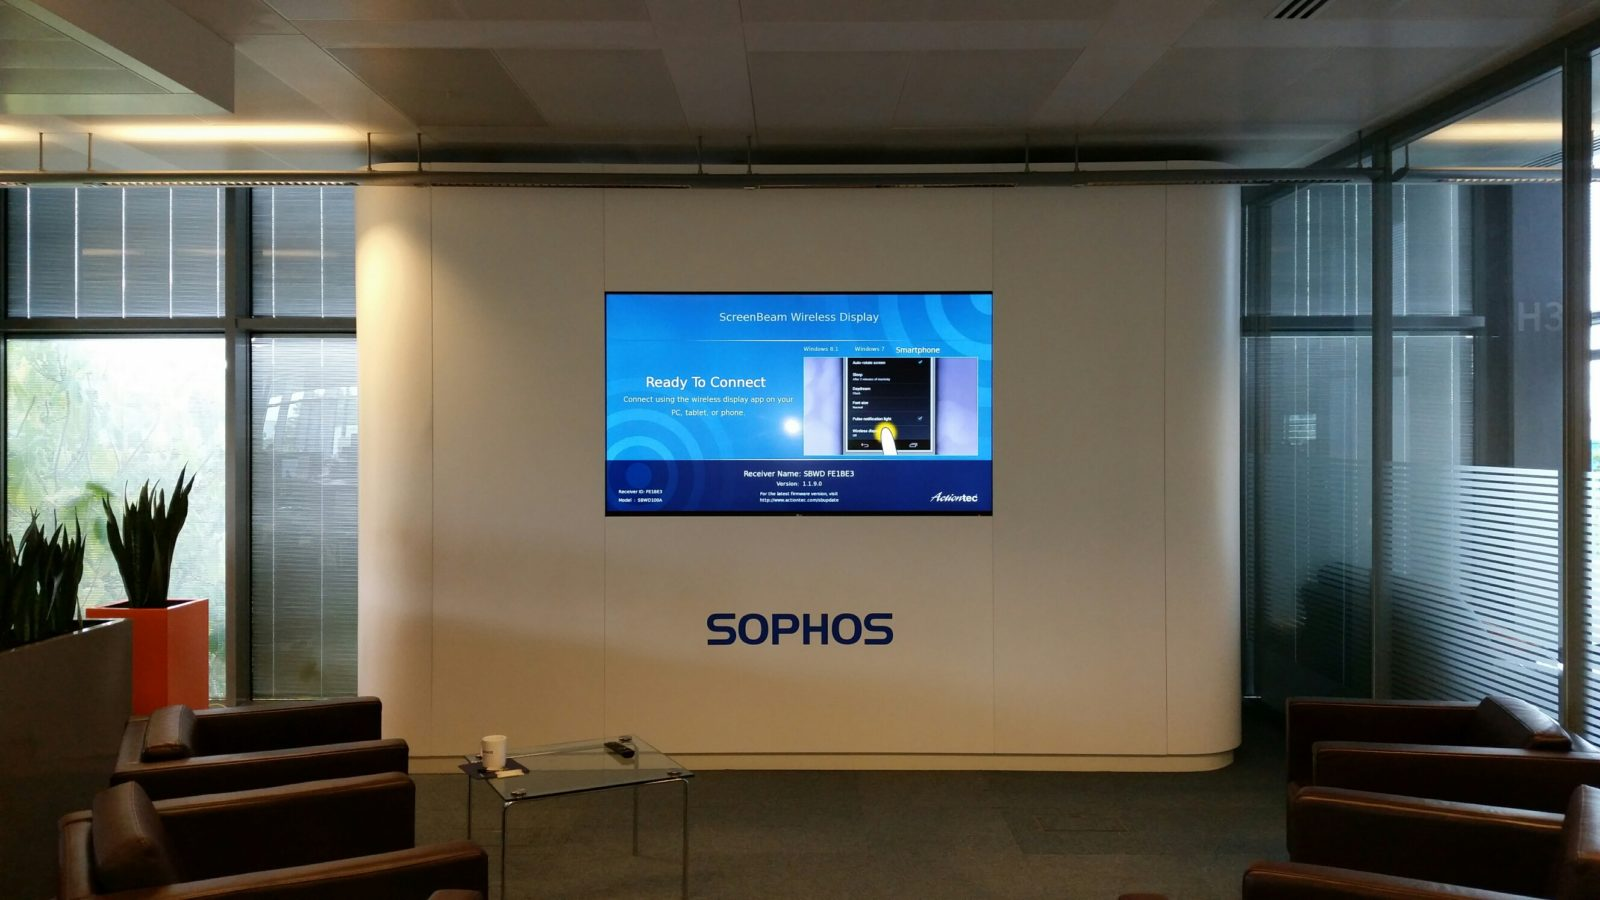 Sophos Zoom Room Integration by Snelling Business Systems Abingdon